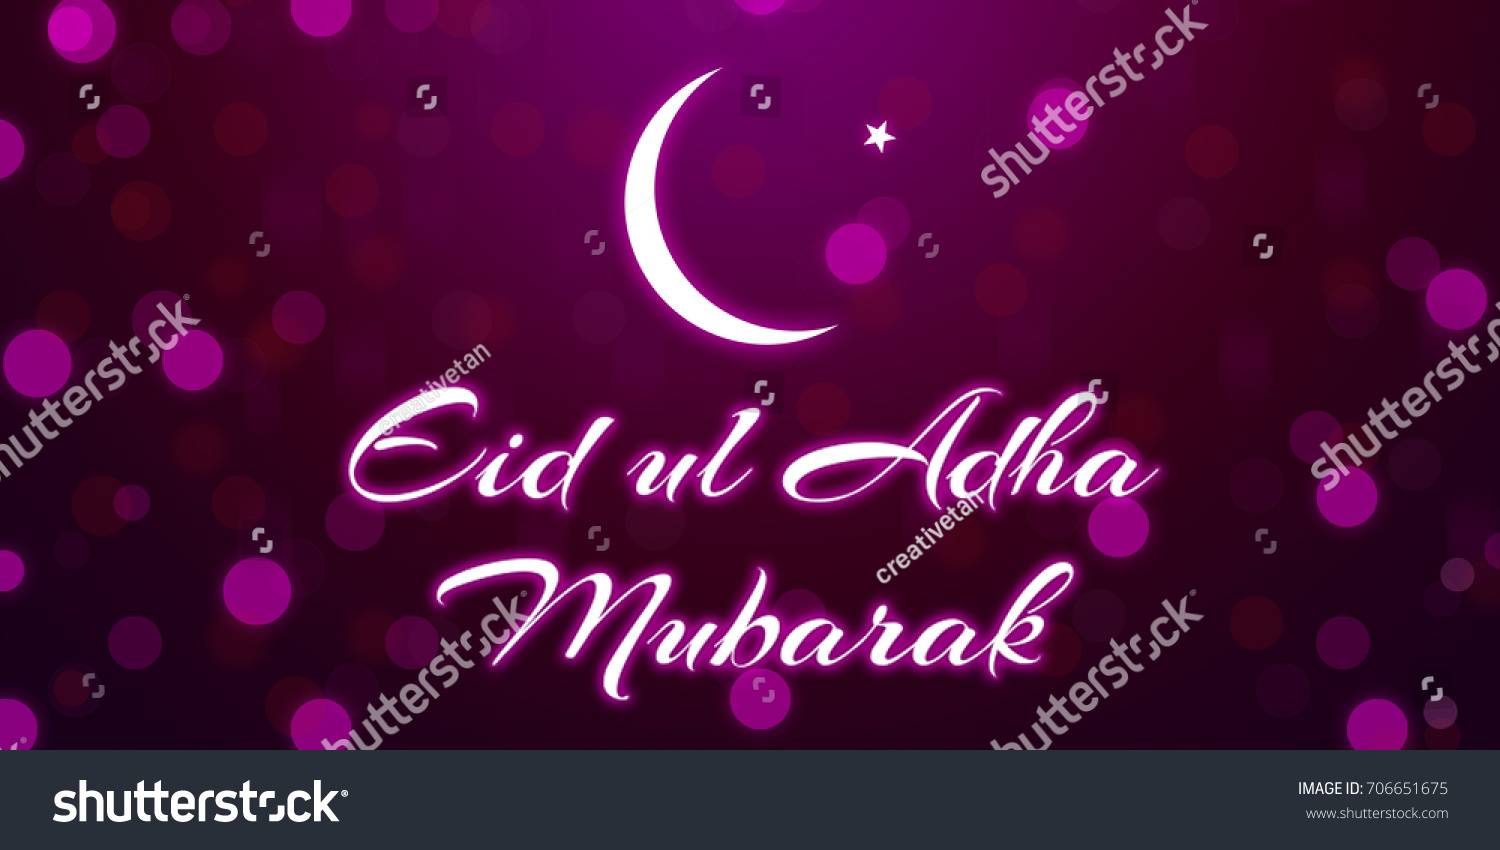 Eid Mubarak Eid Ul Adha Background Stock Illustration Royalty Free